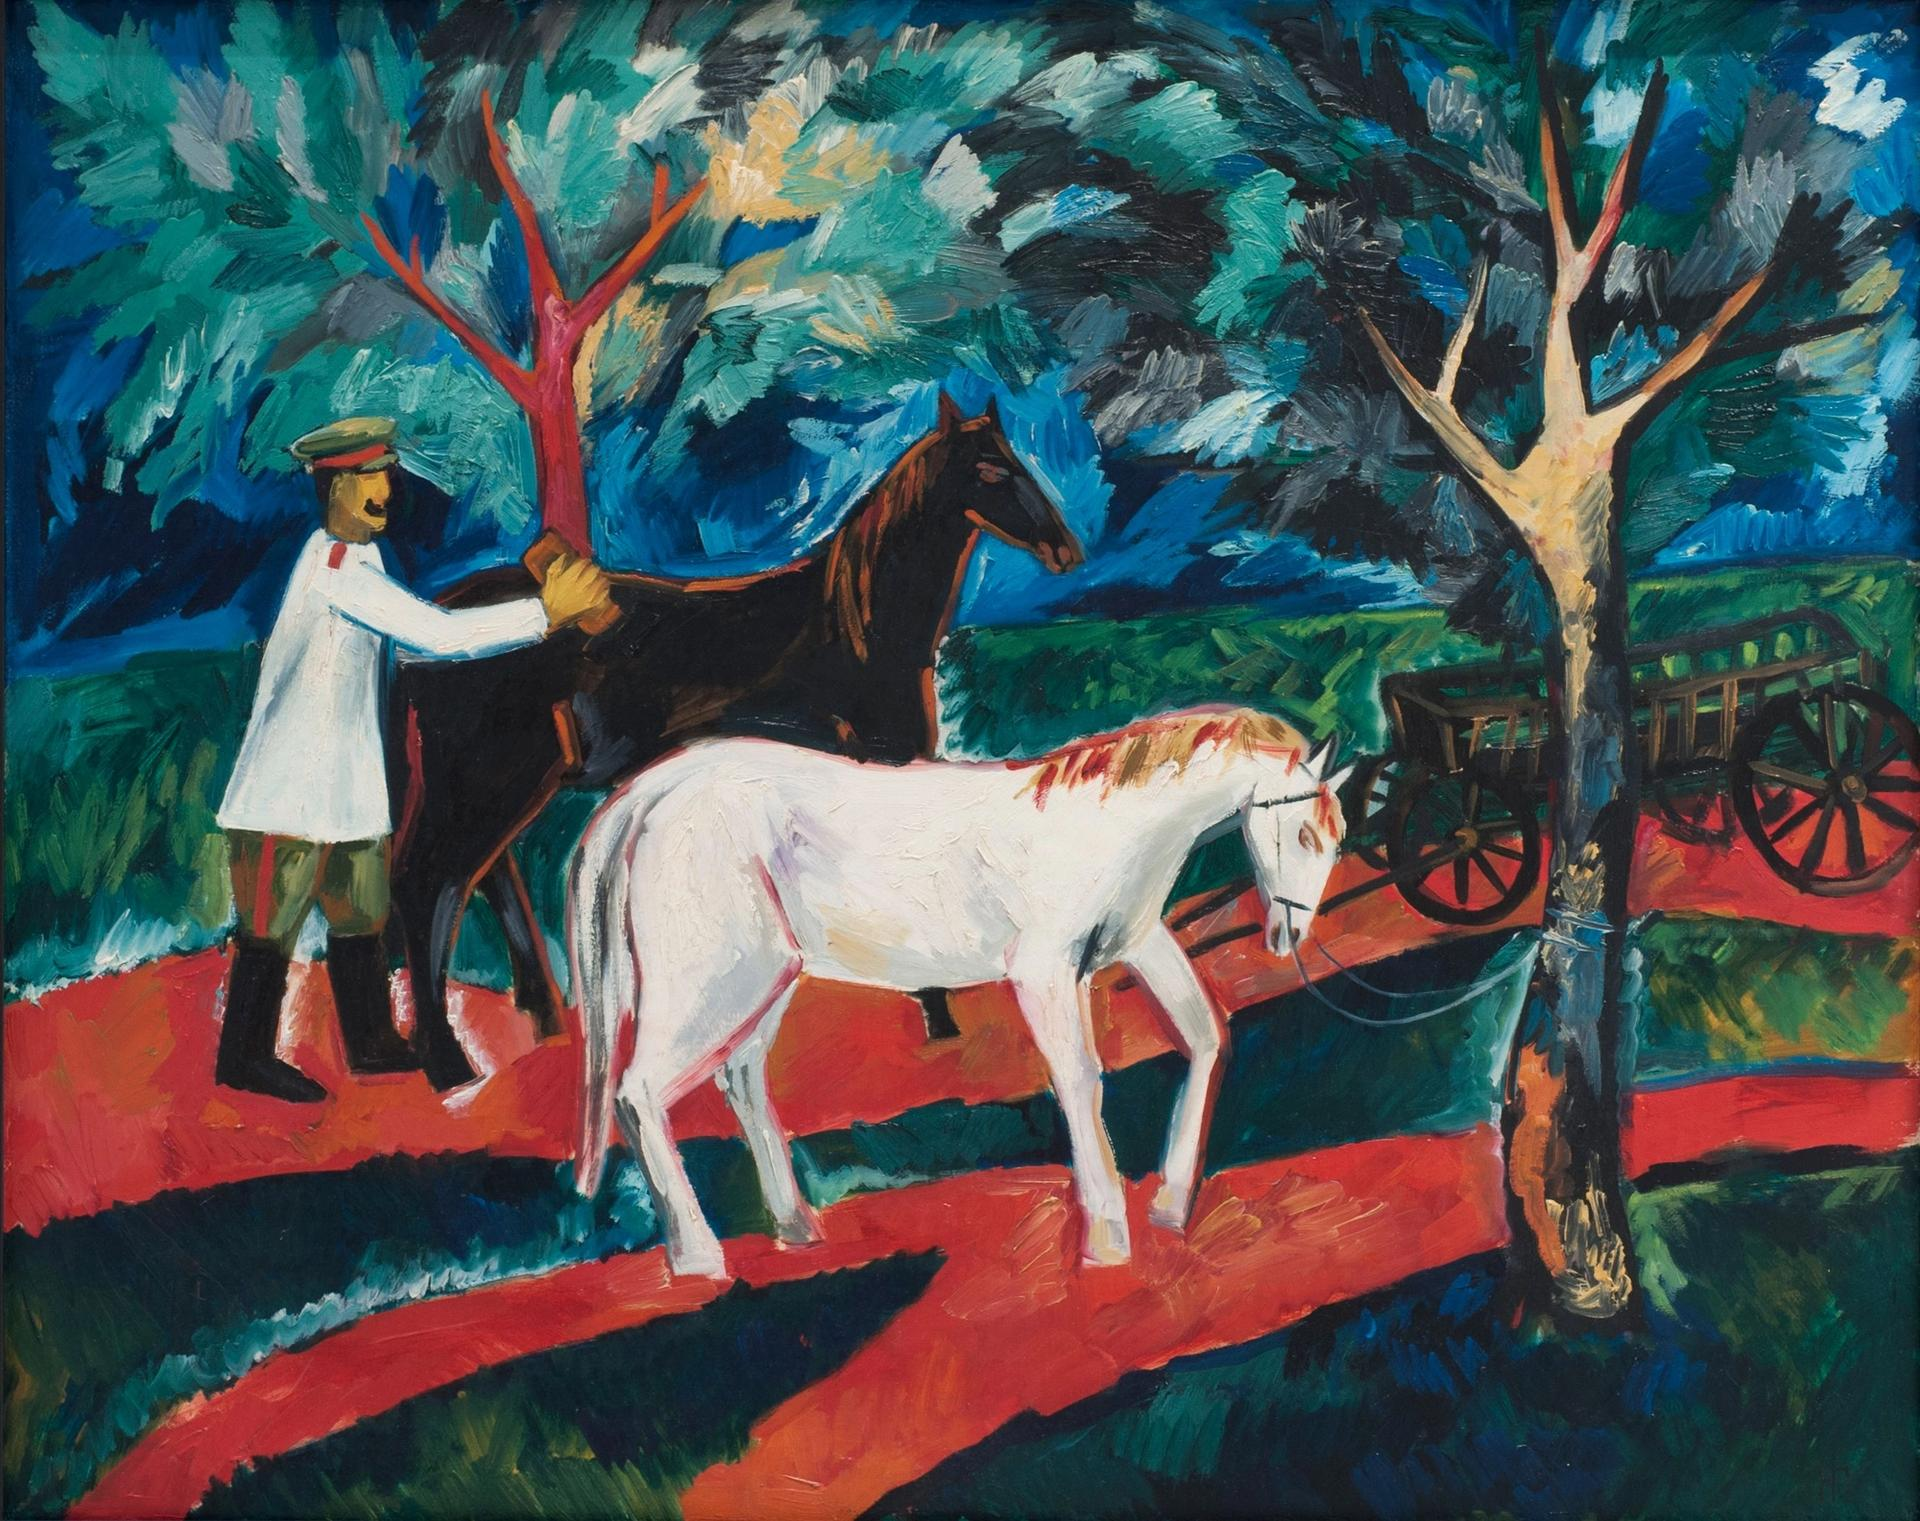 Natalia Goncharova's Soldier Washing Horses (1910), valued in court documents at $6m, is among the works that a gallery's lawyer says were taken 'hostage' Courtesy of Shchukin Gallery